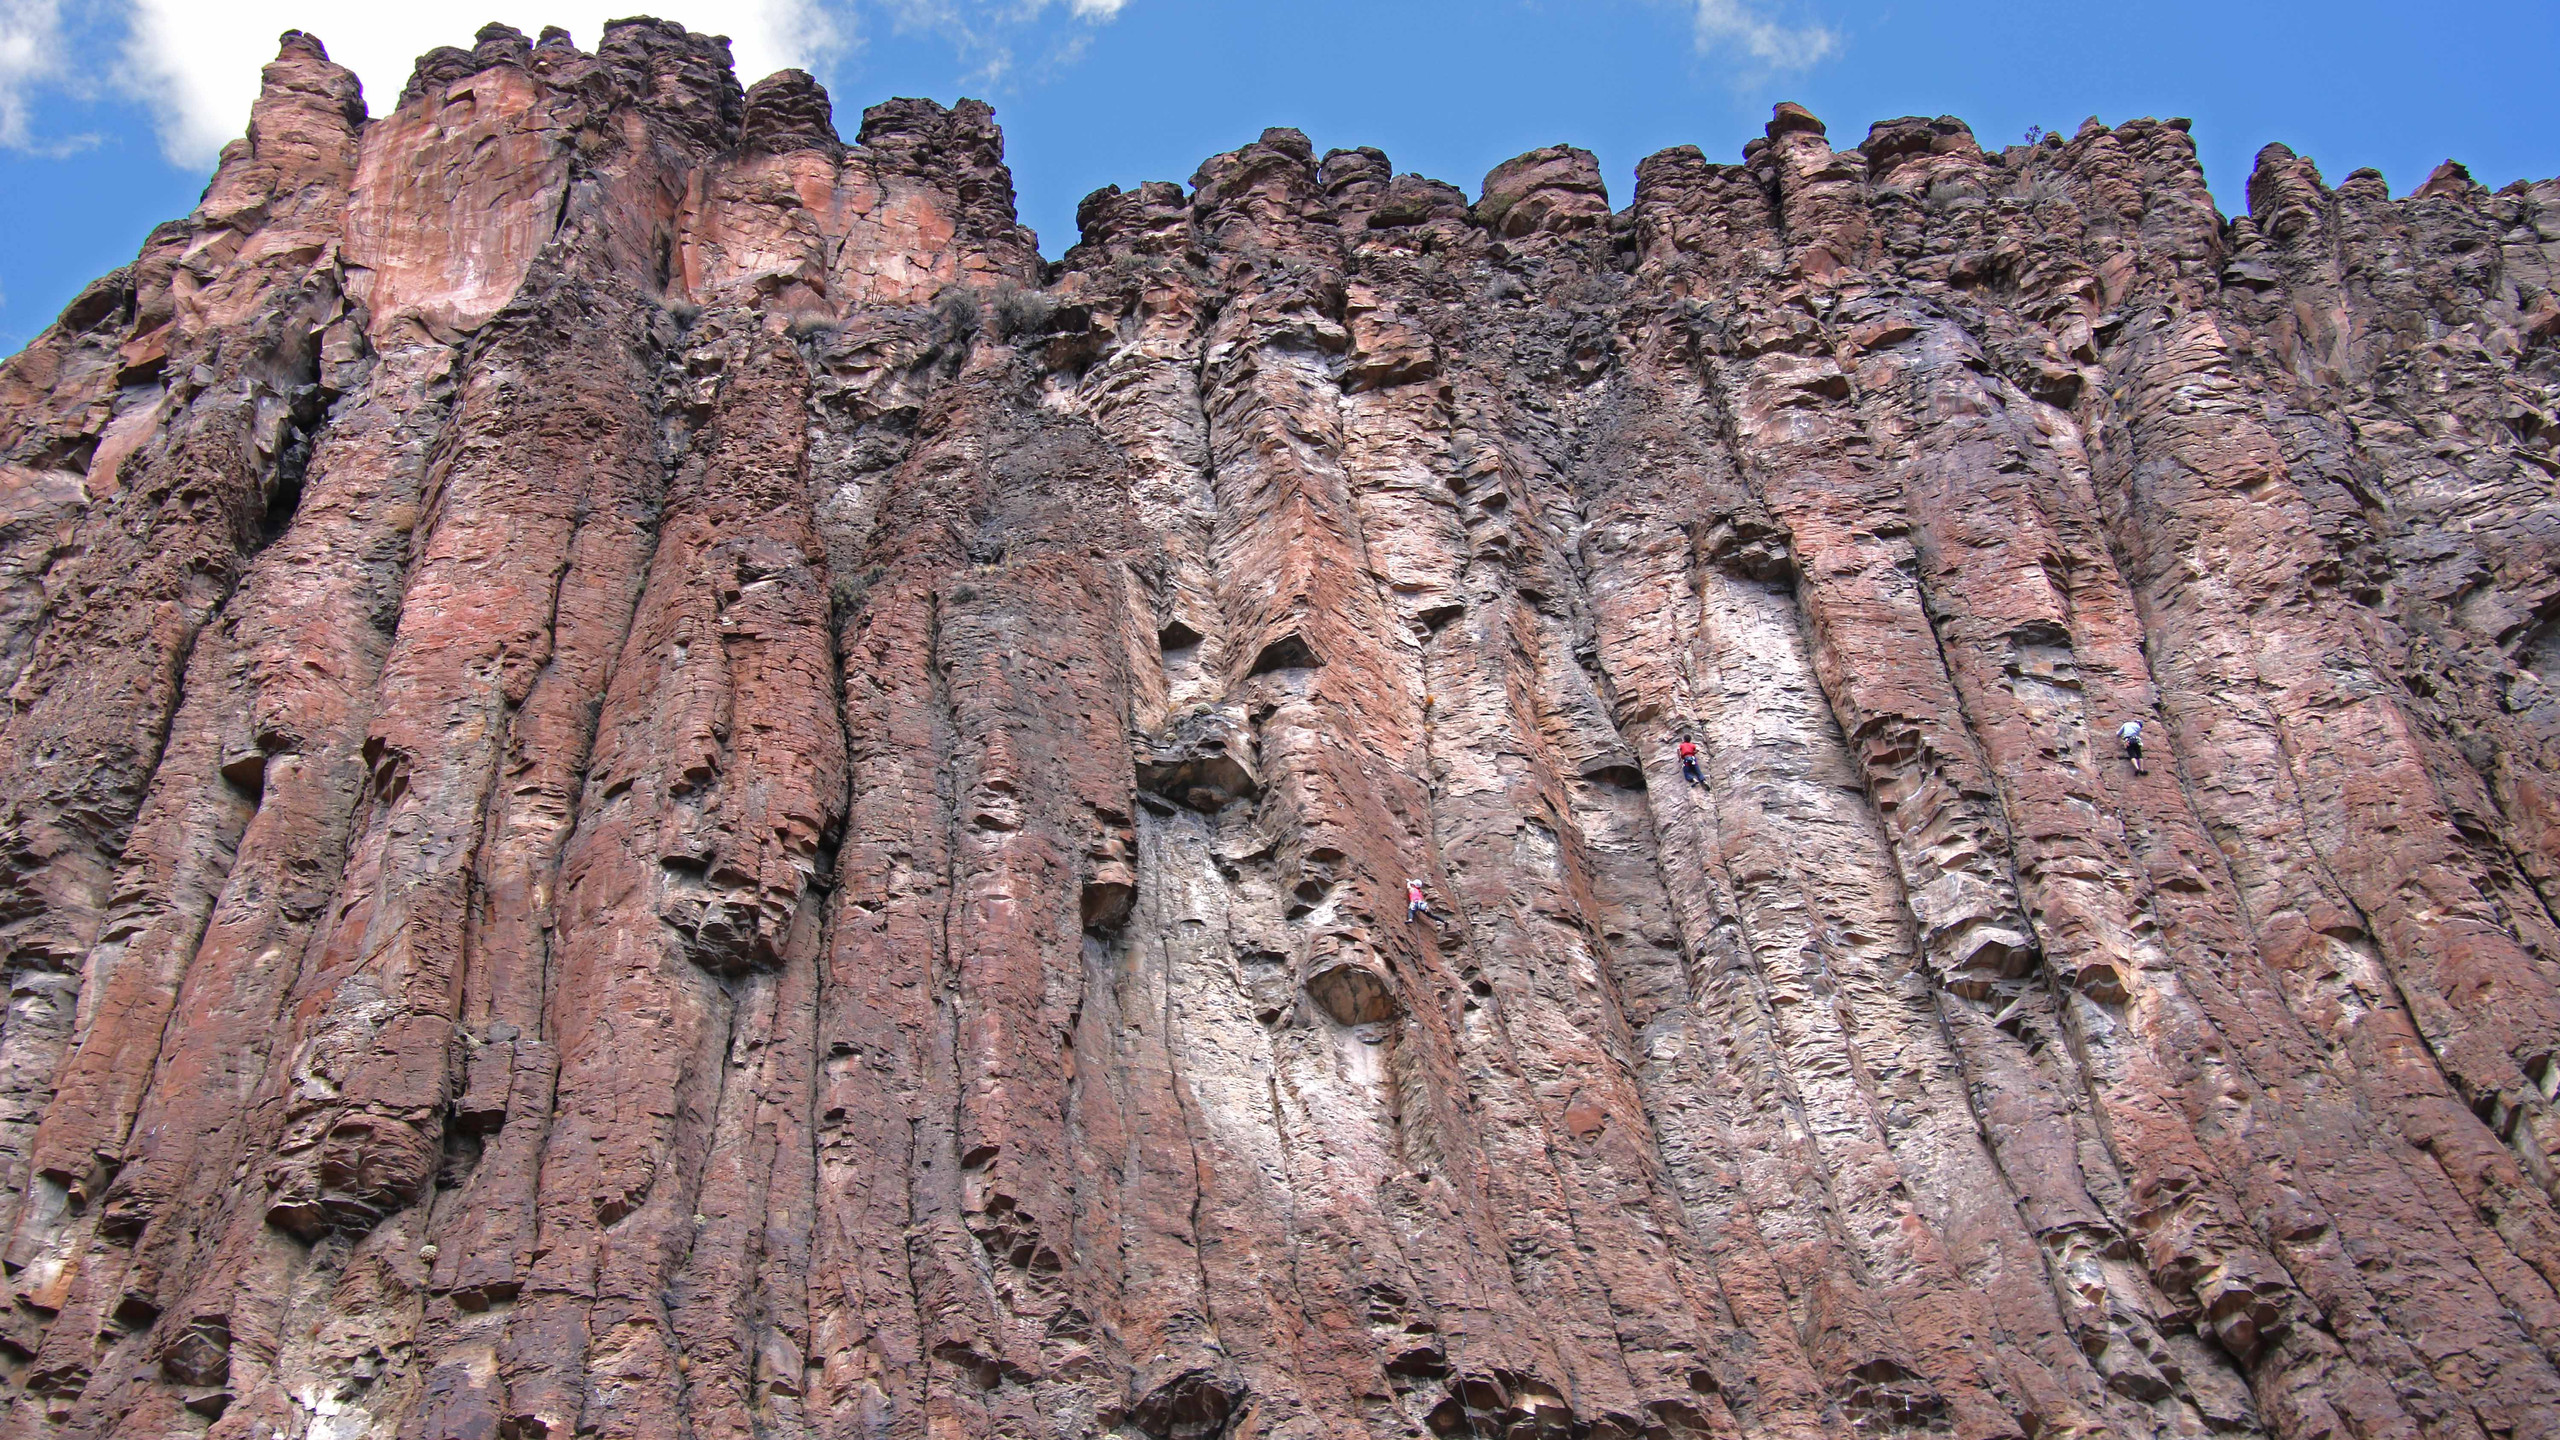 Red and white rock face of Diablo Canyon set against a blue sky